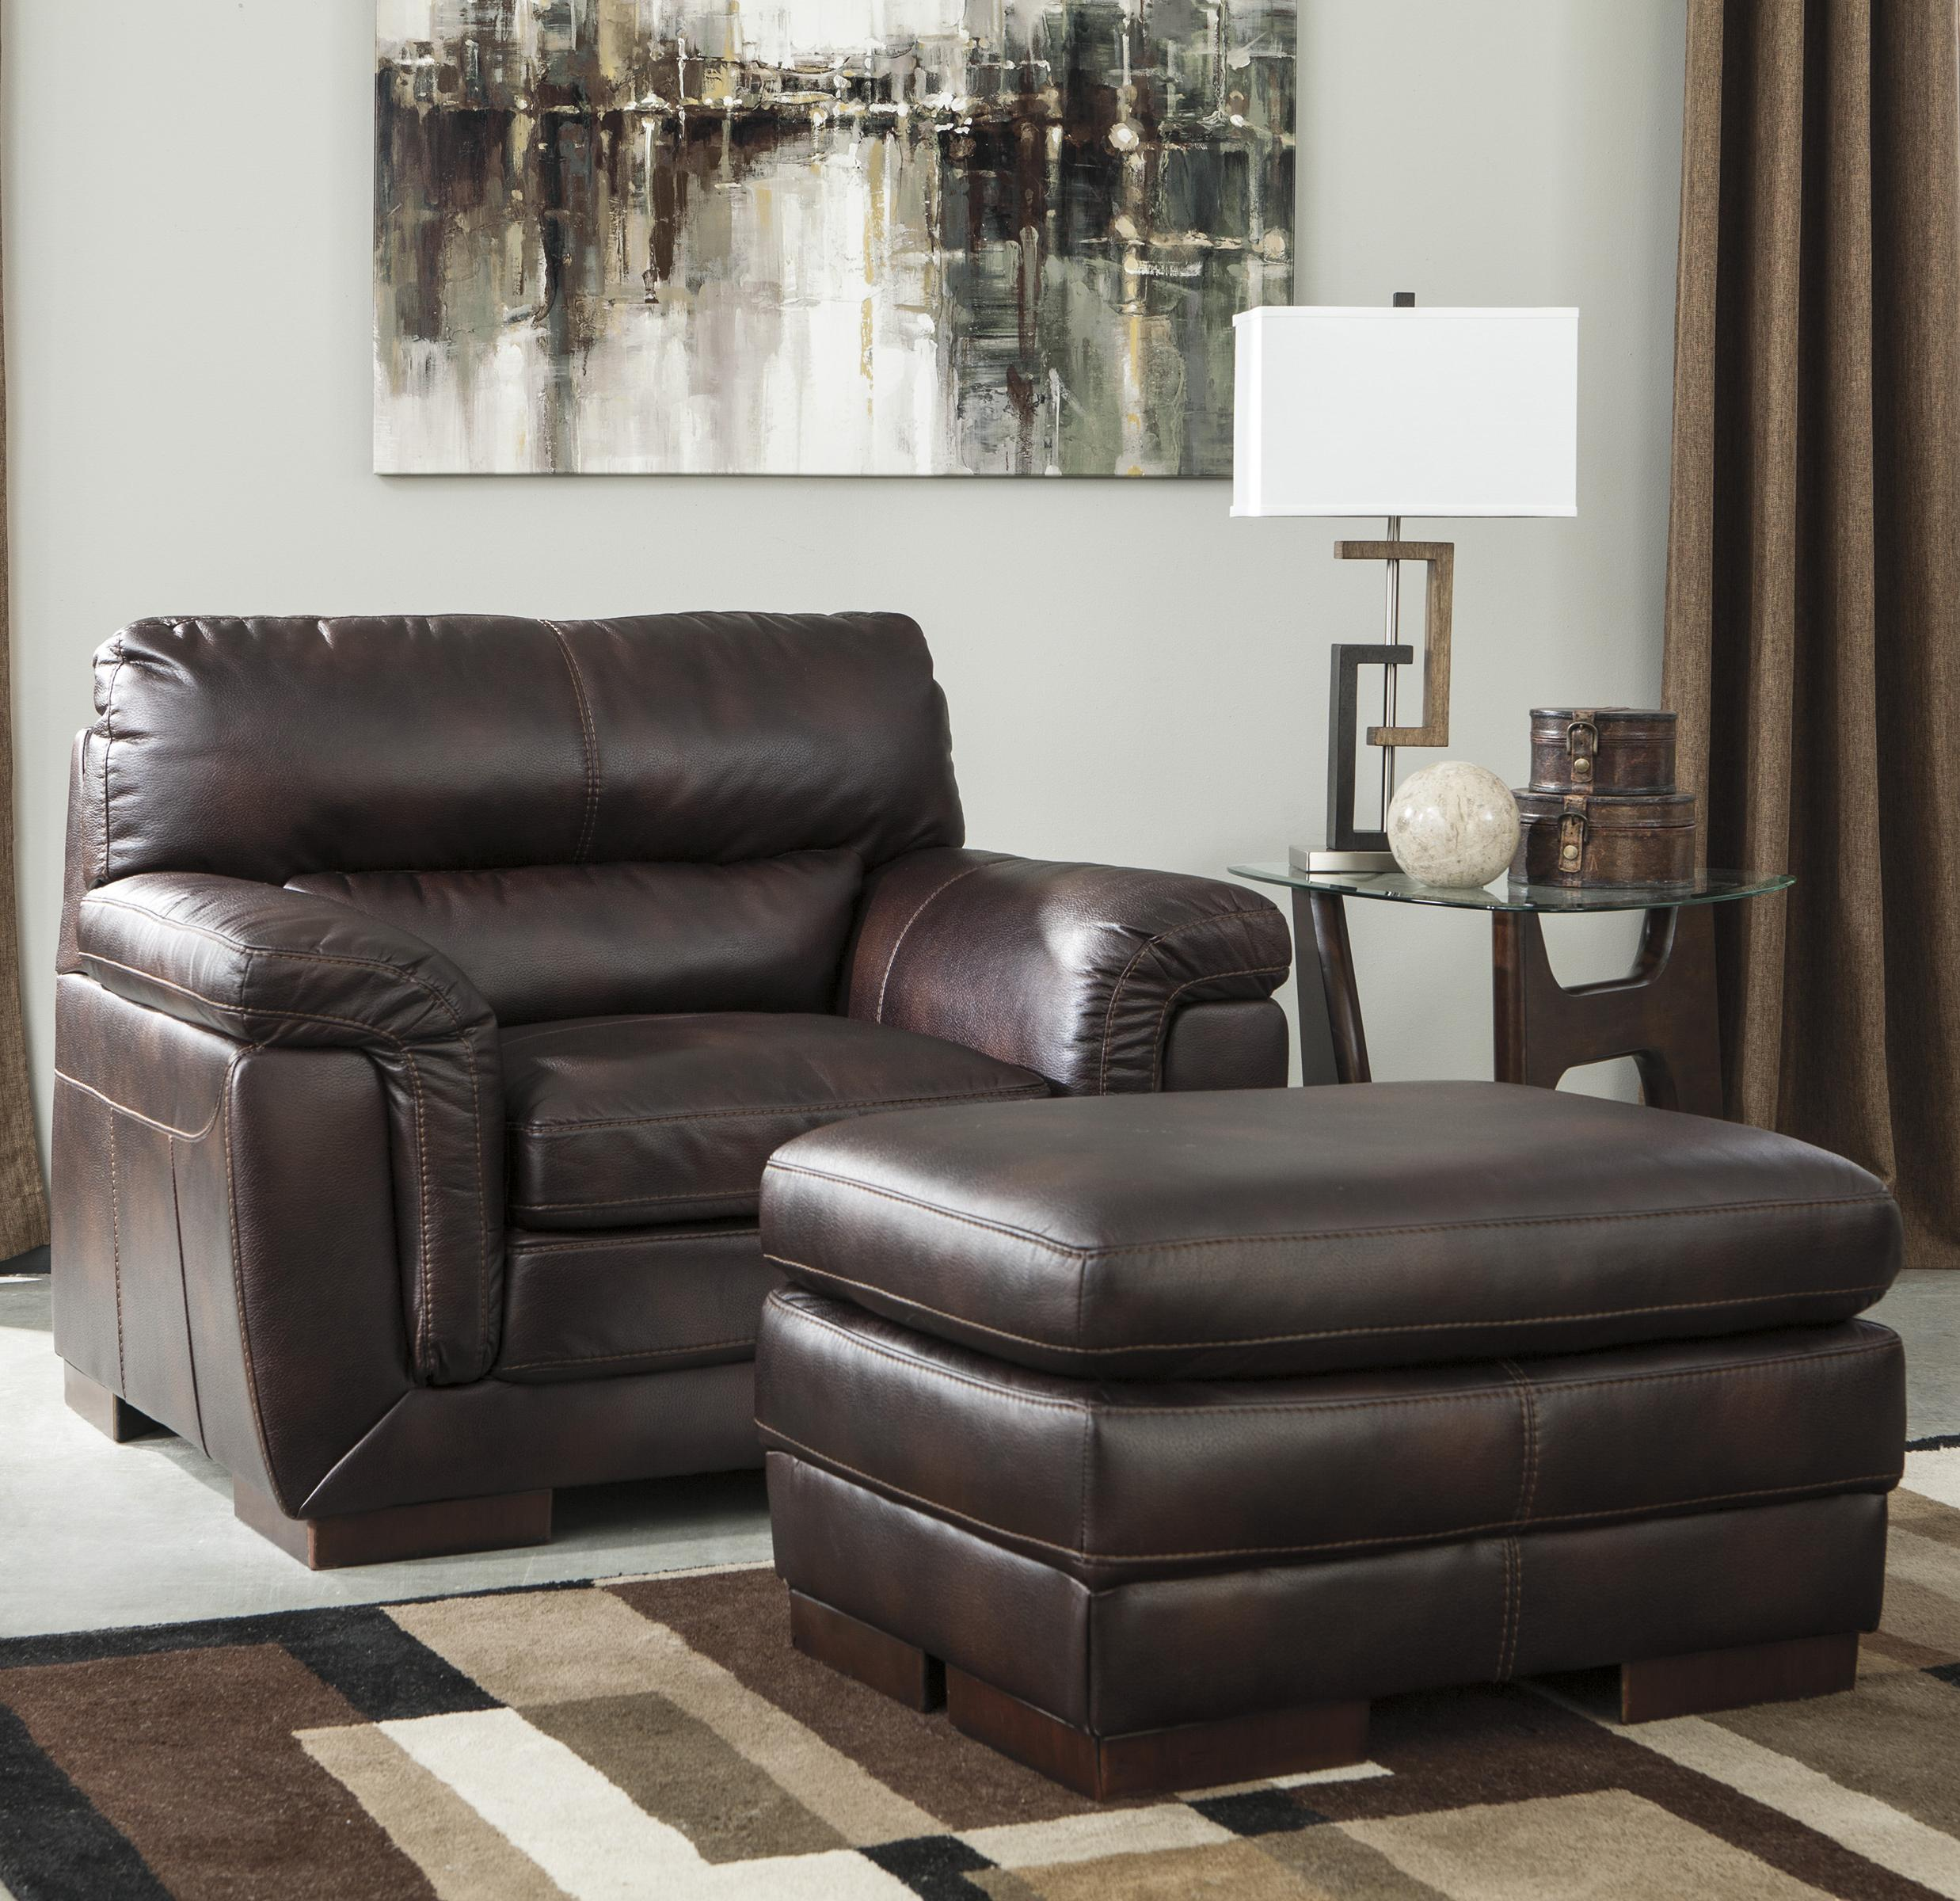 Zelladore   Canyon Contemporary Faux Leather Chair U0026 Ottoman By Ashley  Furniture